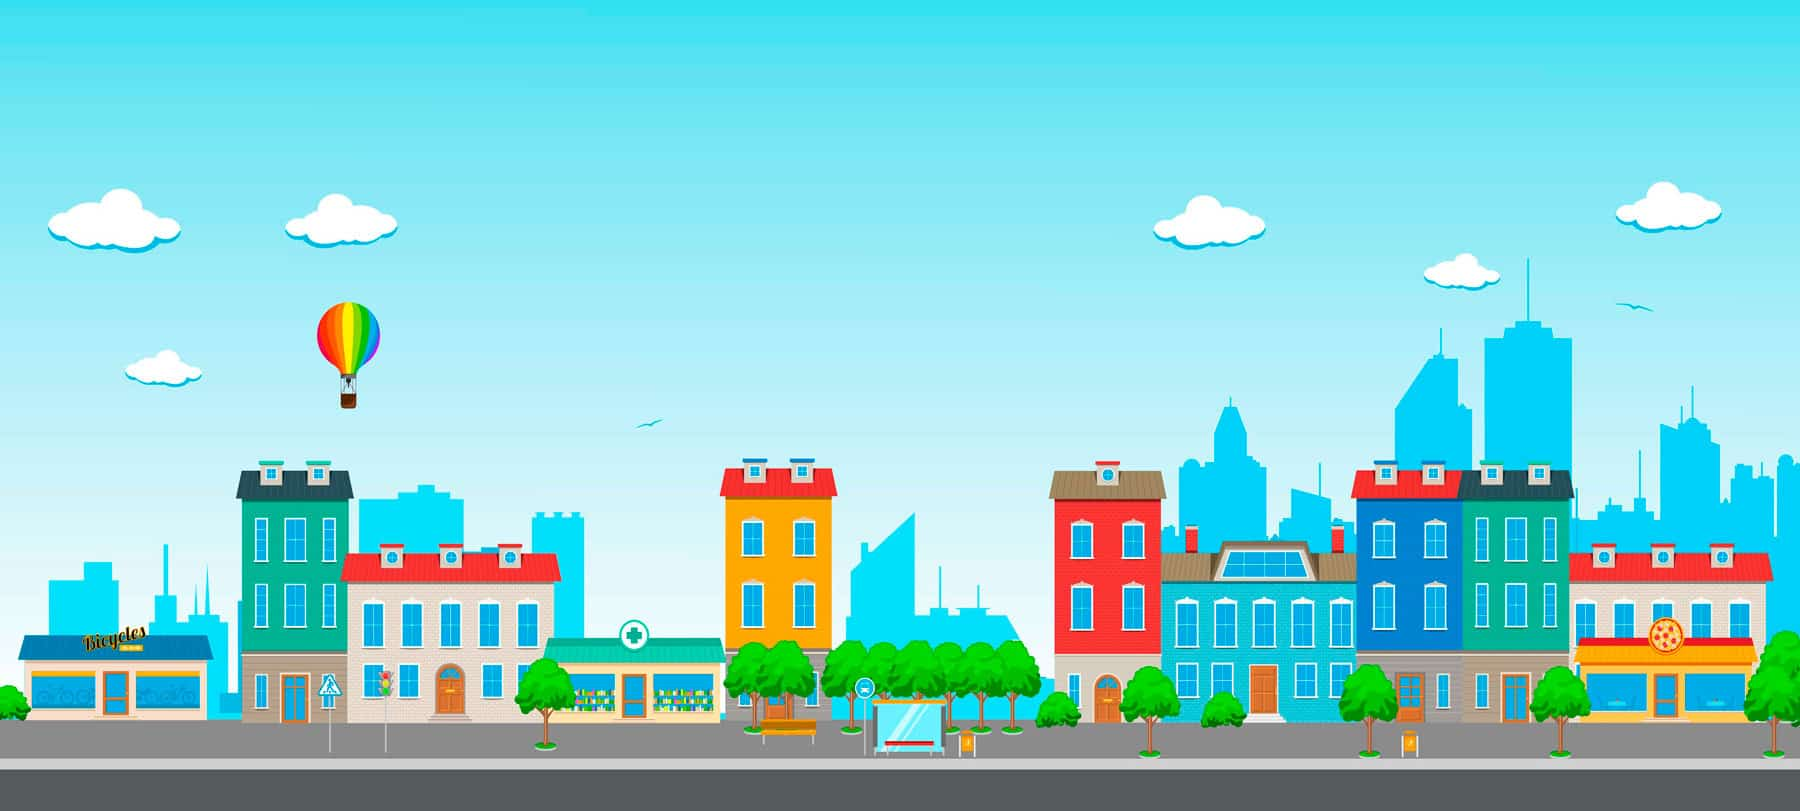 Banner for Piper Web Design of cityscape in bright colors